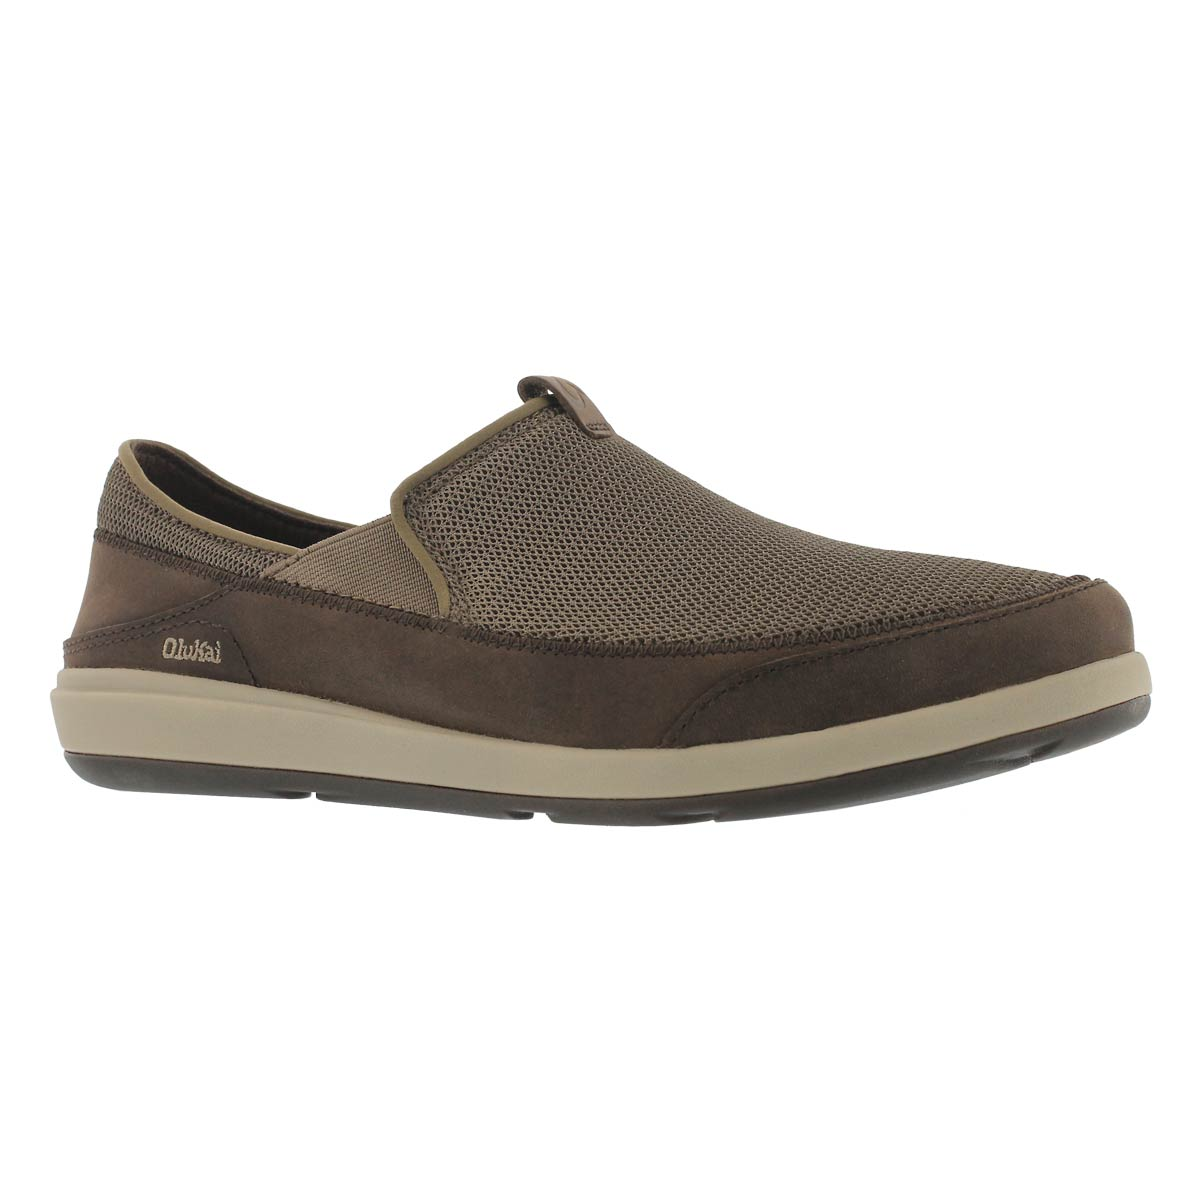 Men's MAKIA mustang slip on casual shoes